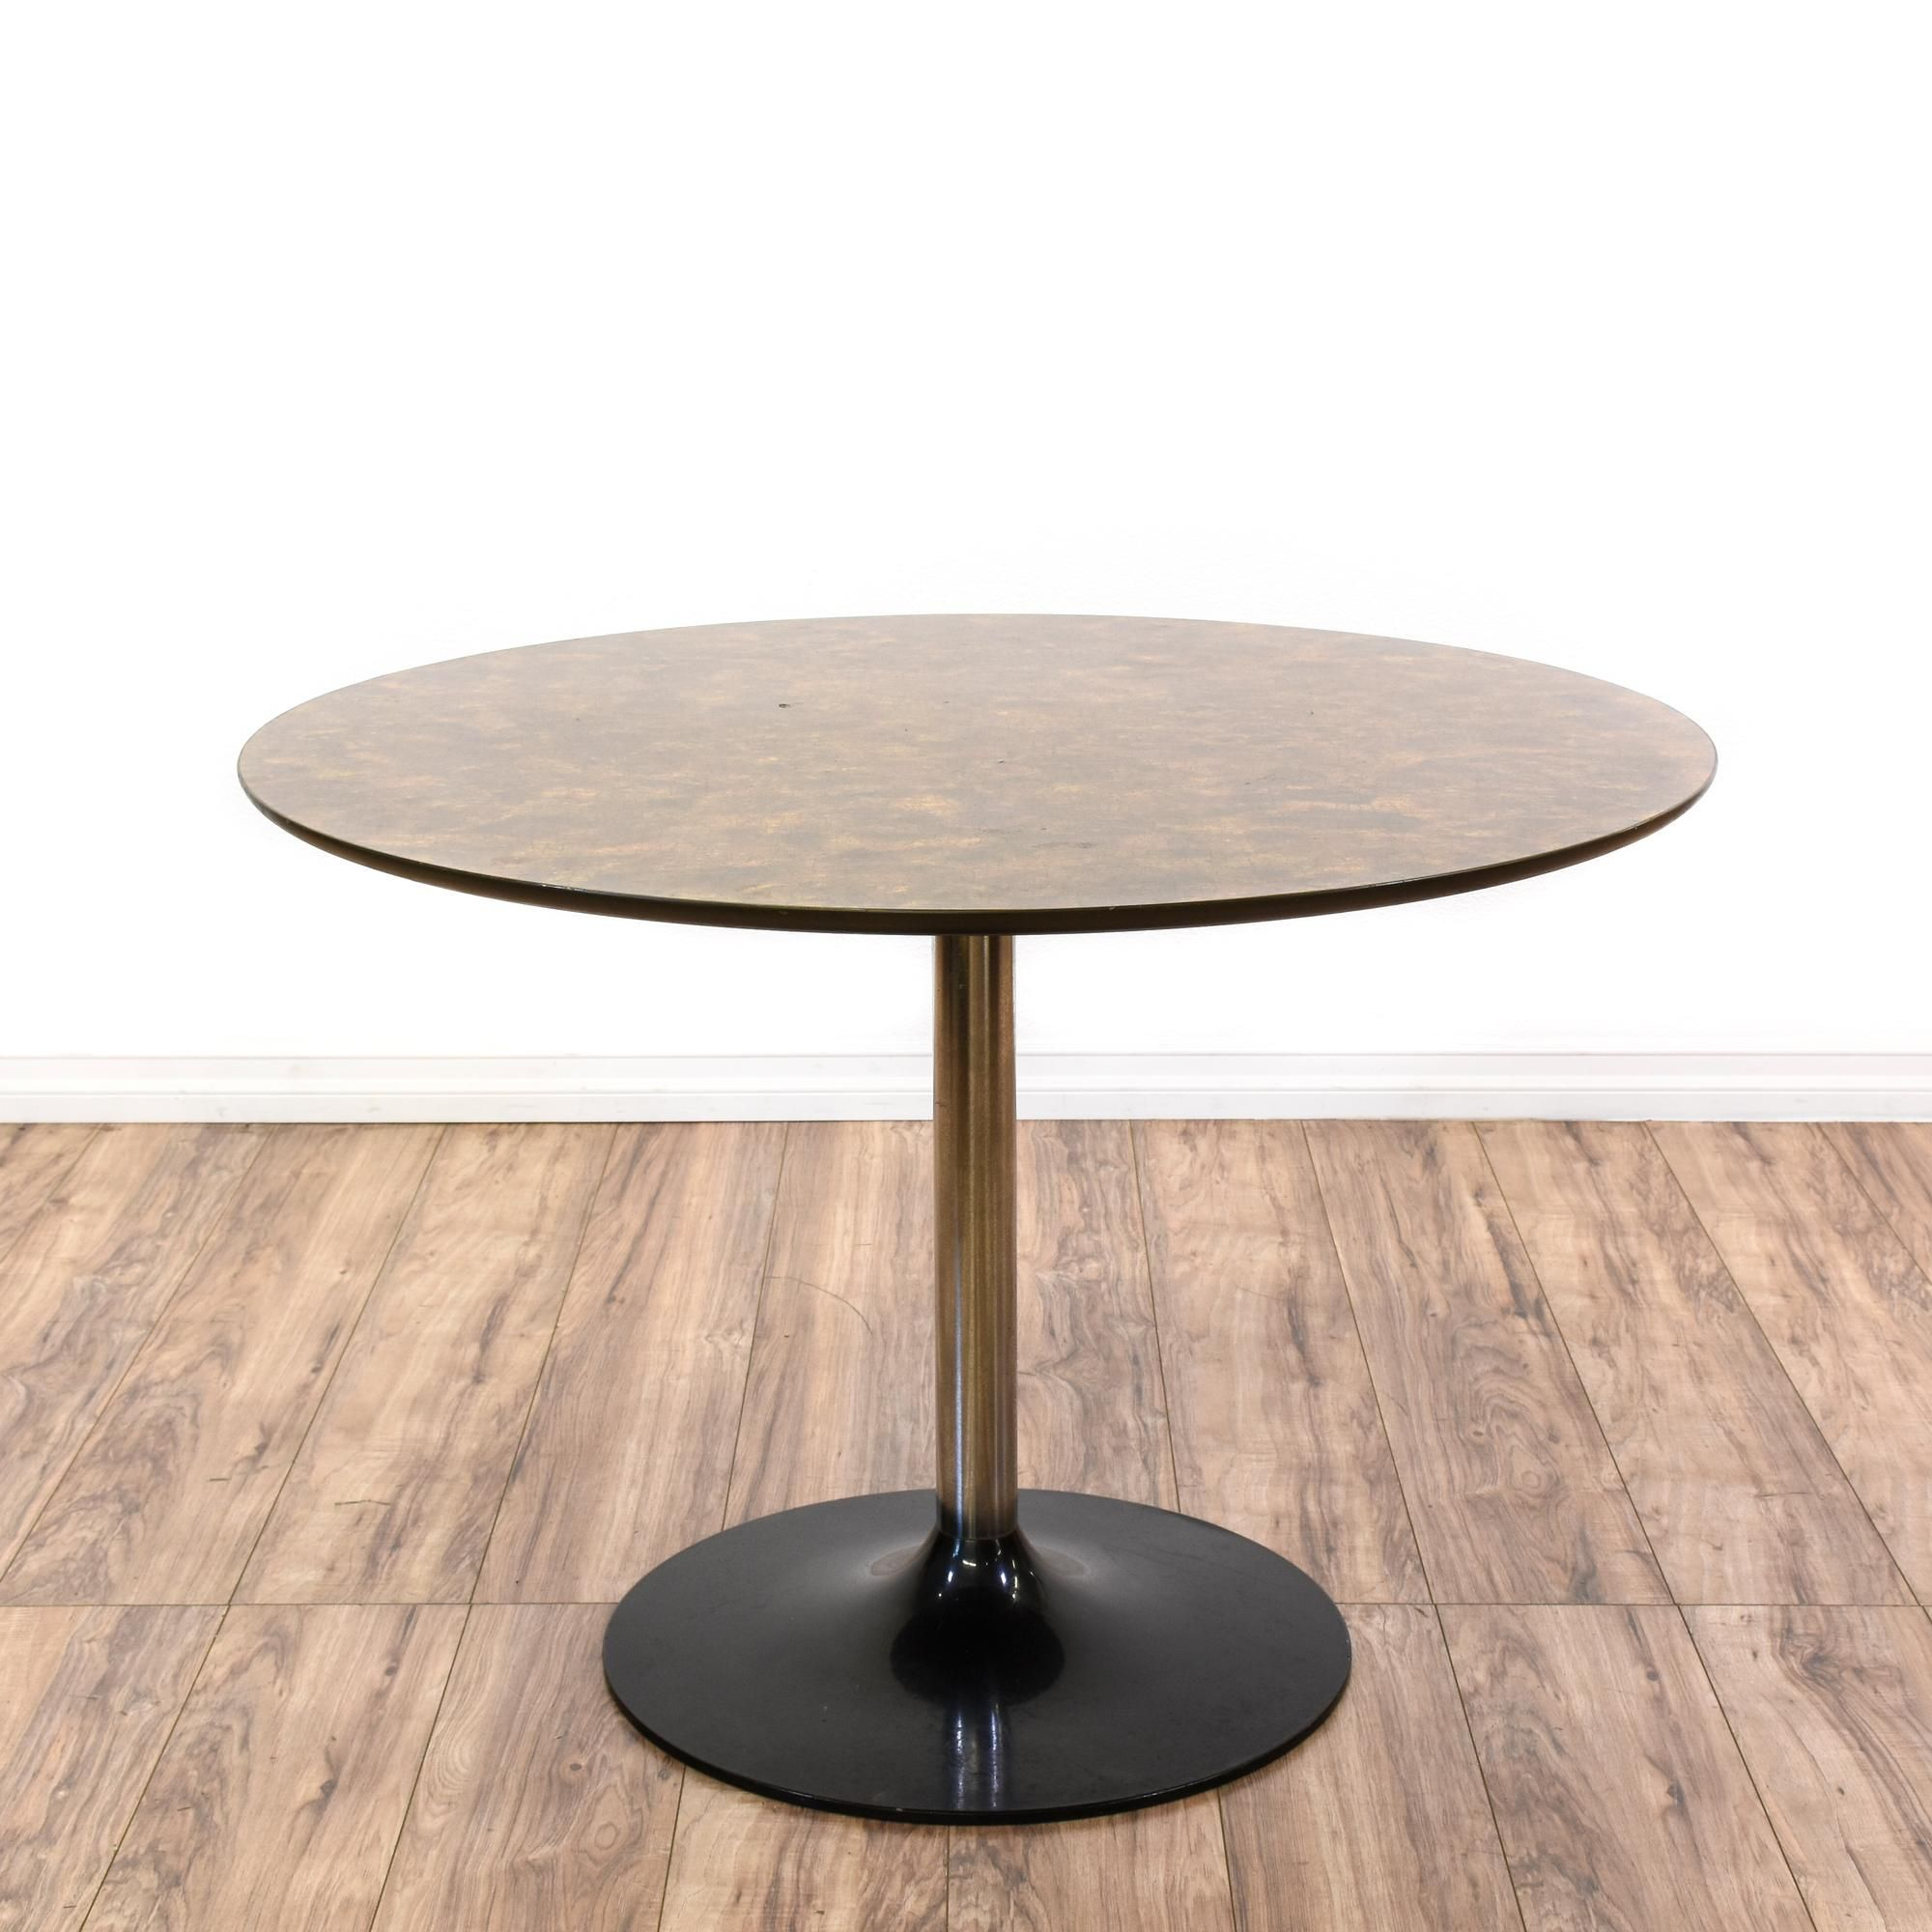 This Eero Saarinen Inspired Tulip Table Features A Formica Table